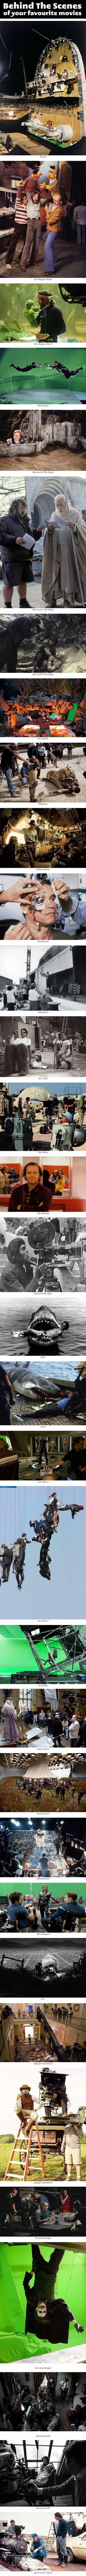 behind the scenes of famous movies